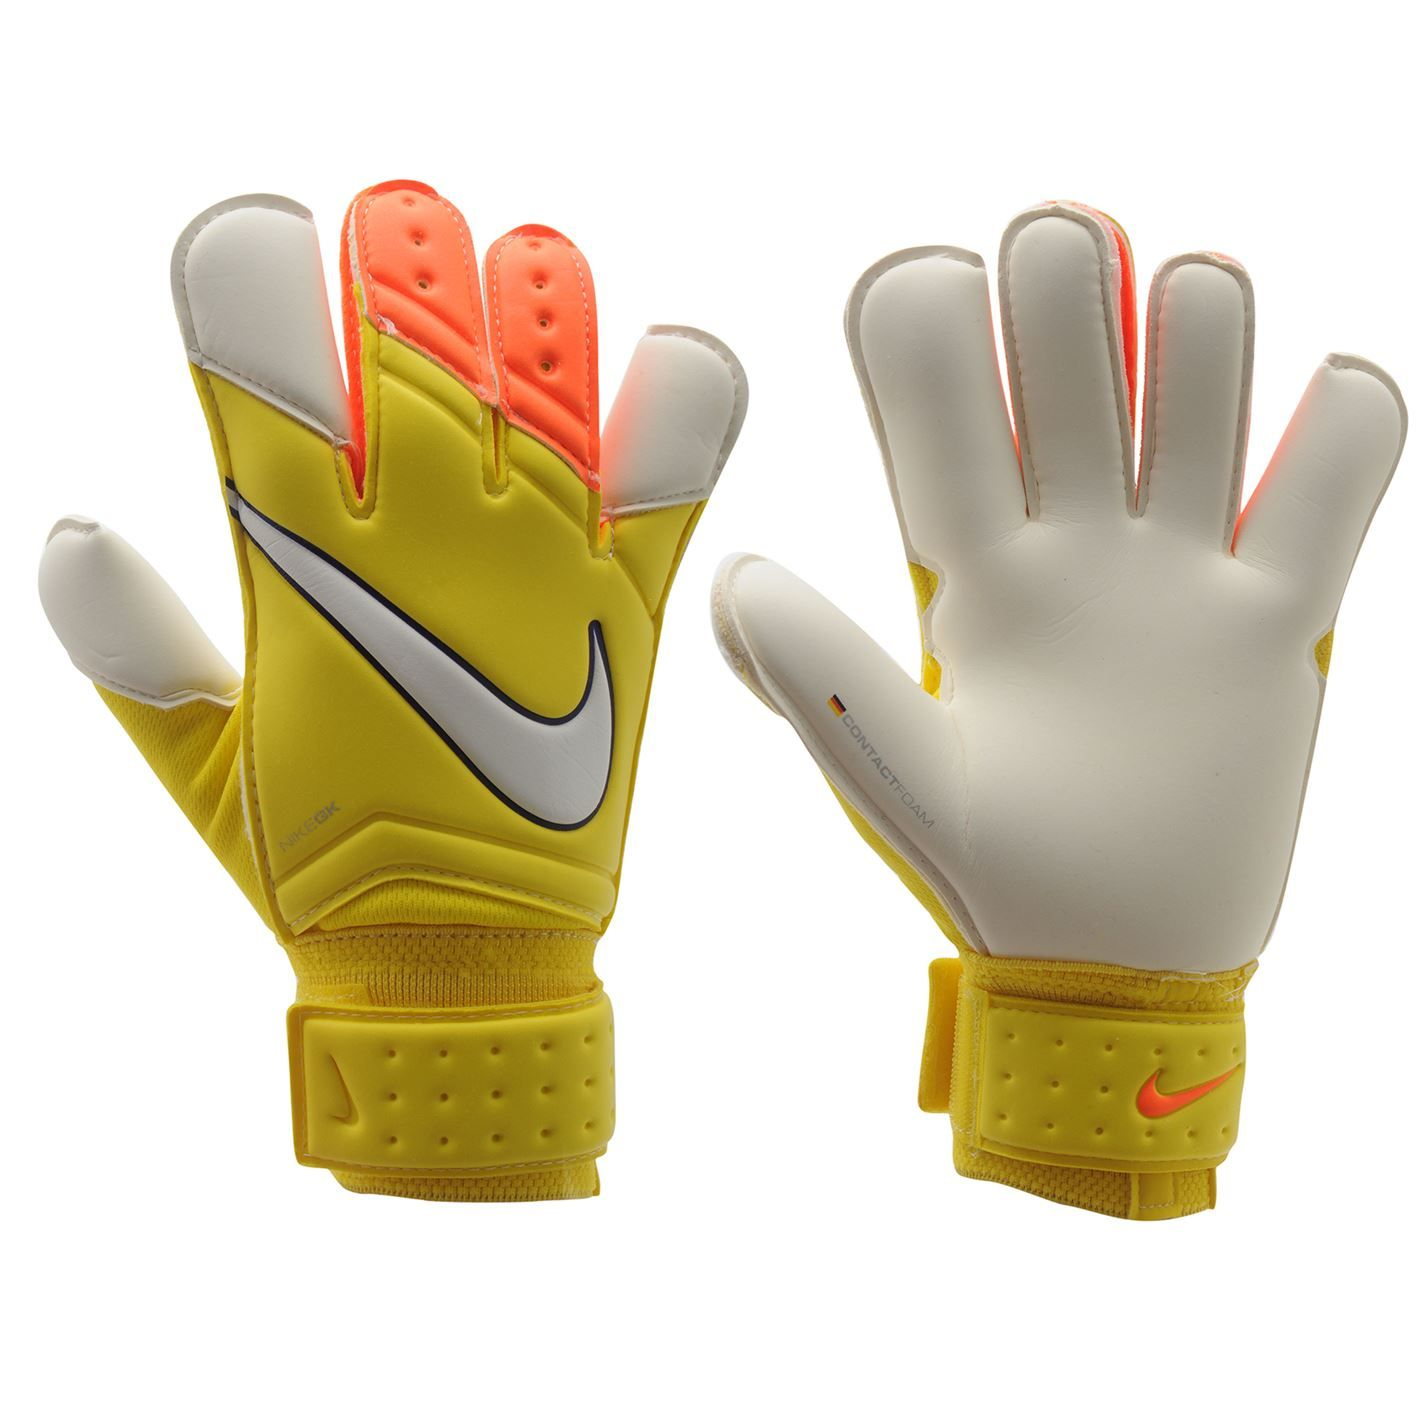 Mens gloves sports direct - Nike Nike Vapor Grip Goalkeeper Gloves Mens Mens Goal Keeper Gloves